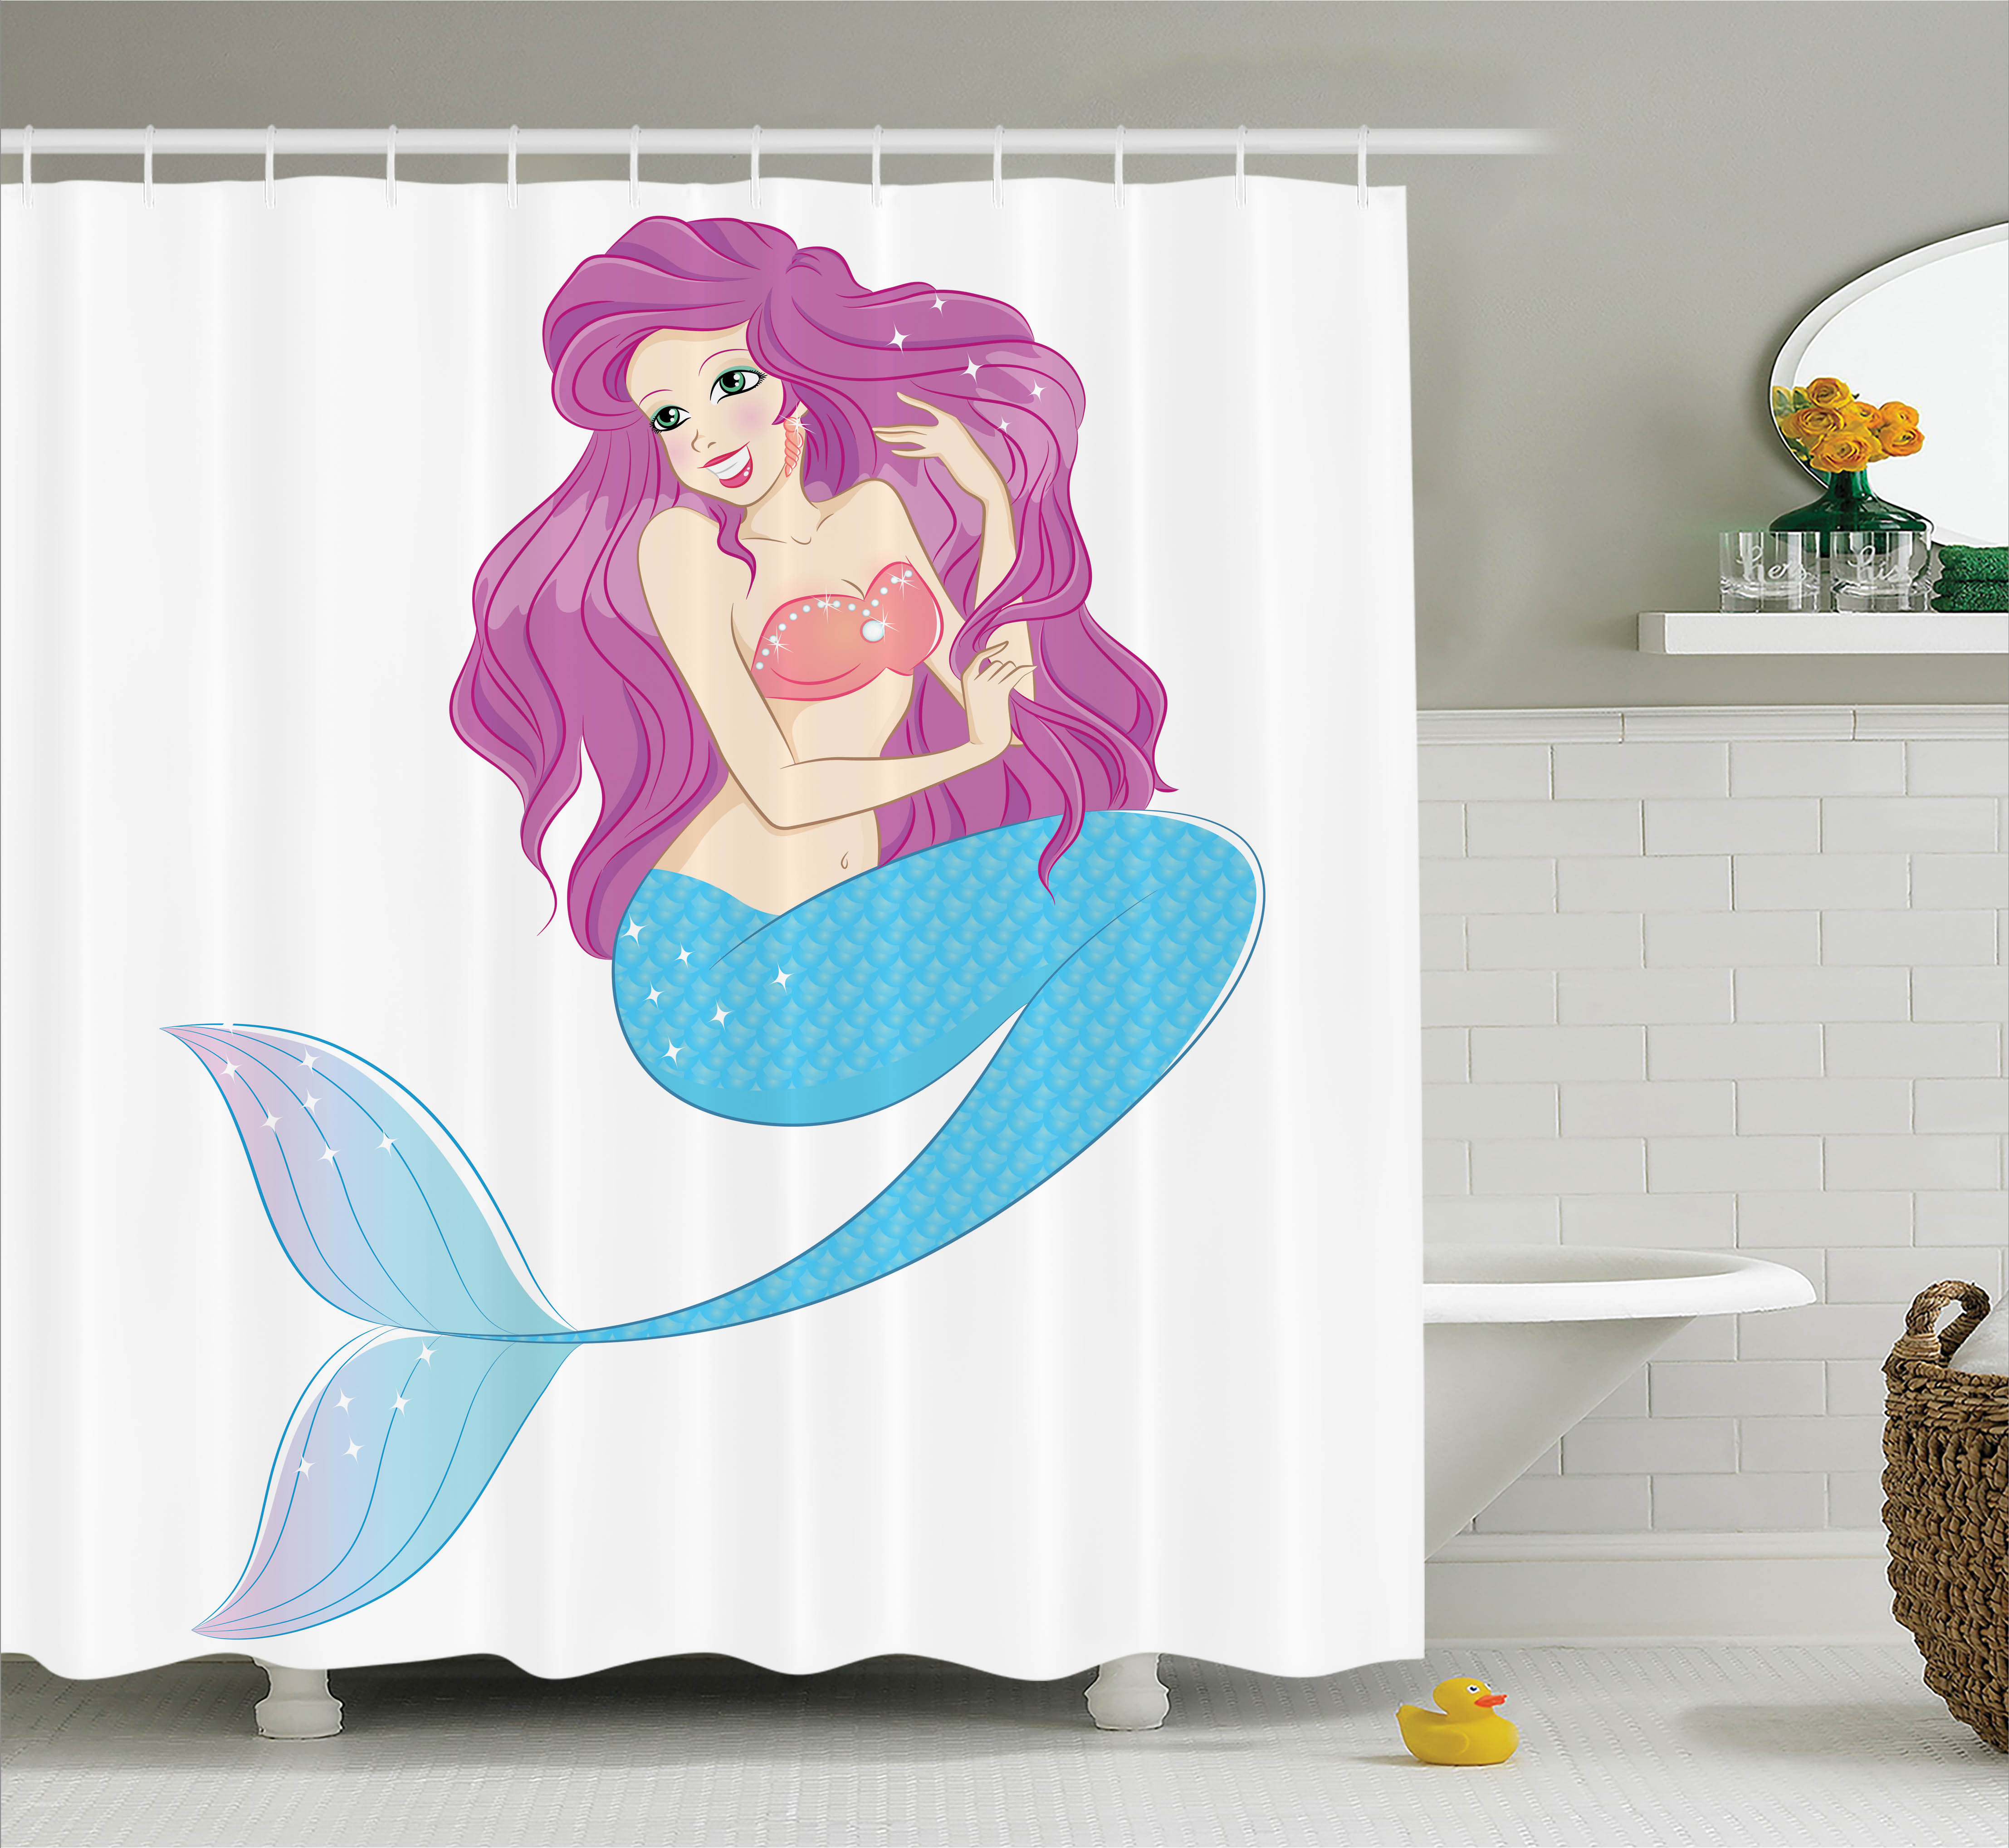 Girl Shower Curtain Set, Cute Mermaid Playing with Her Hair Folkloric Mythical Goddess Princess Image, Bathroom Decor,  Turquoise Fuscia White, by Ambesonne